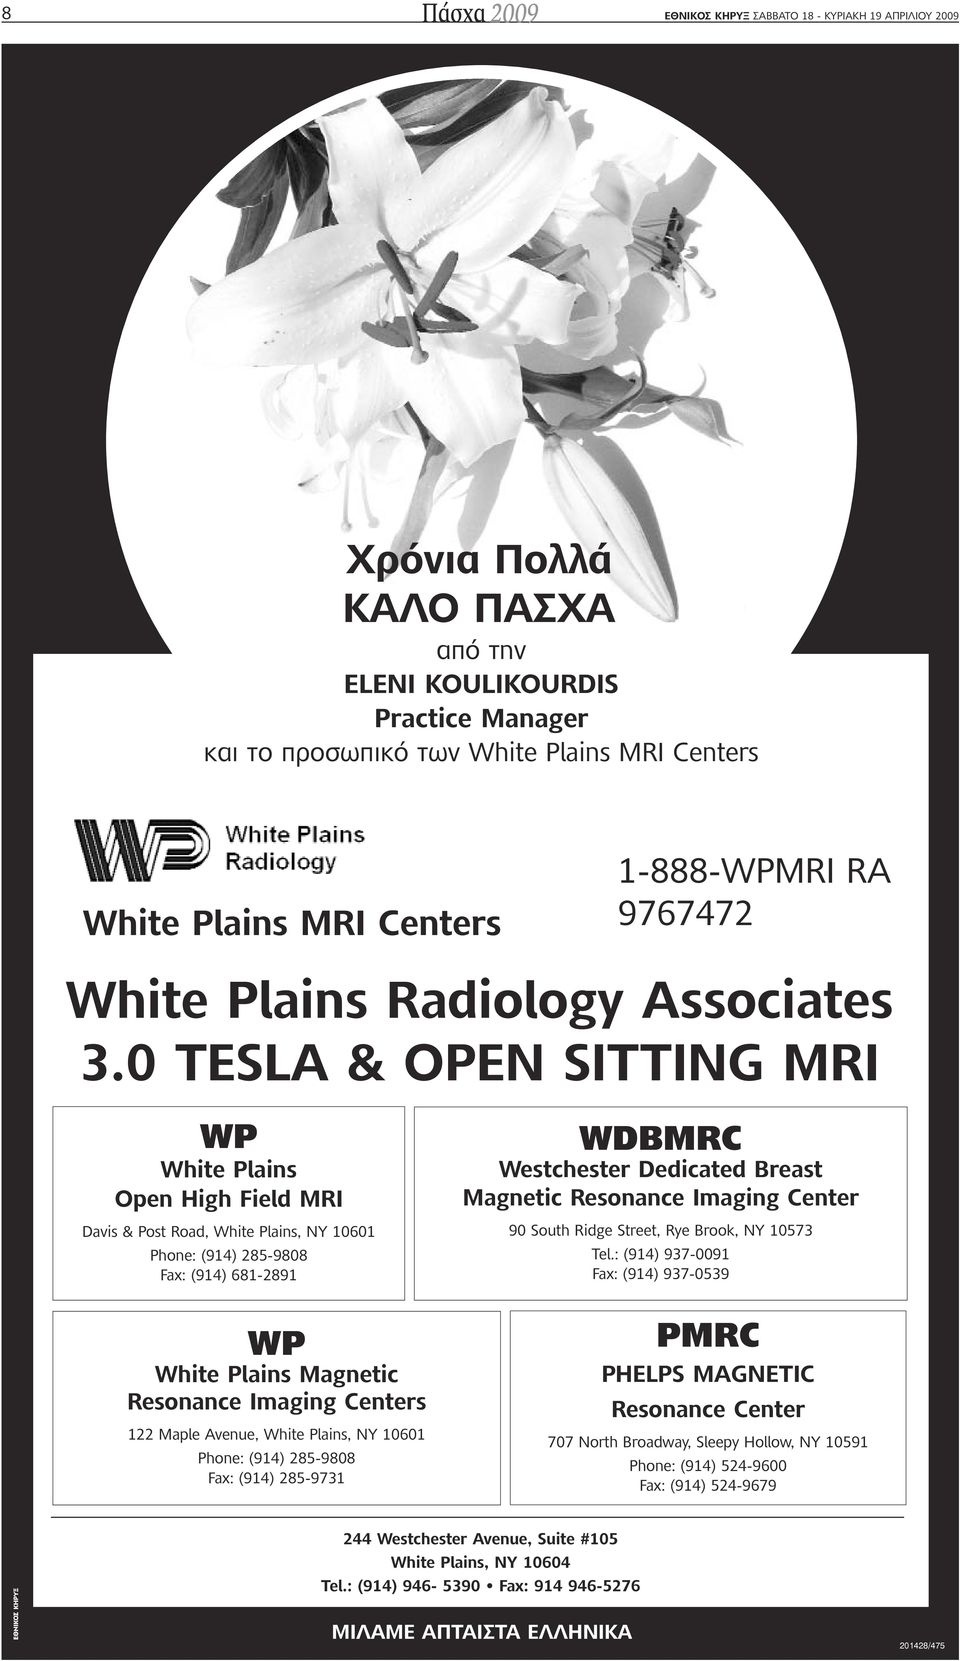 0 TESLA & OPEN SITTING MRI WP White Plains Open High Field MRI Davis & Post Road, White Plains, NY 10601 Phone: (914) 285-9808 Fax: (914) 681-2891 WP White Plains Magnetic Resonance Imaging Centers